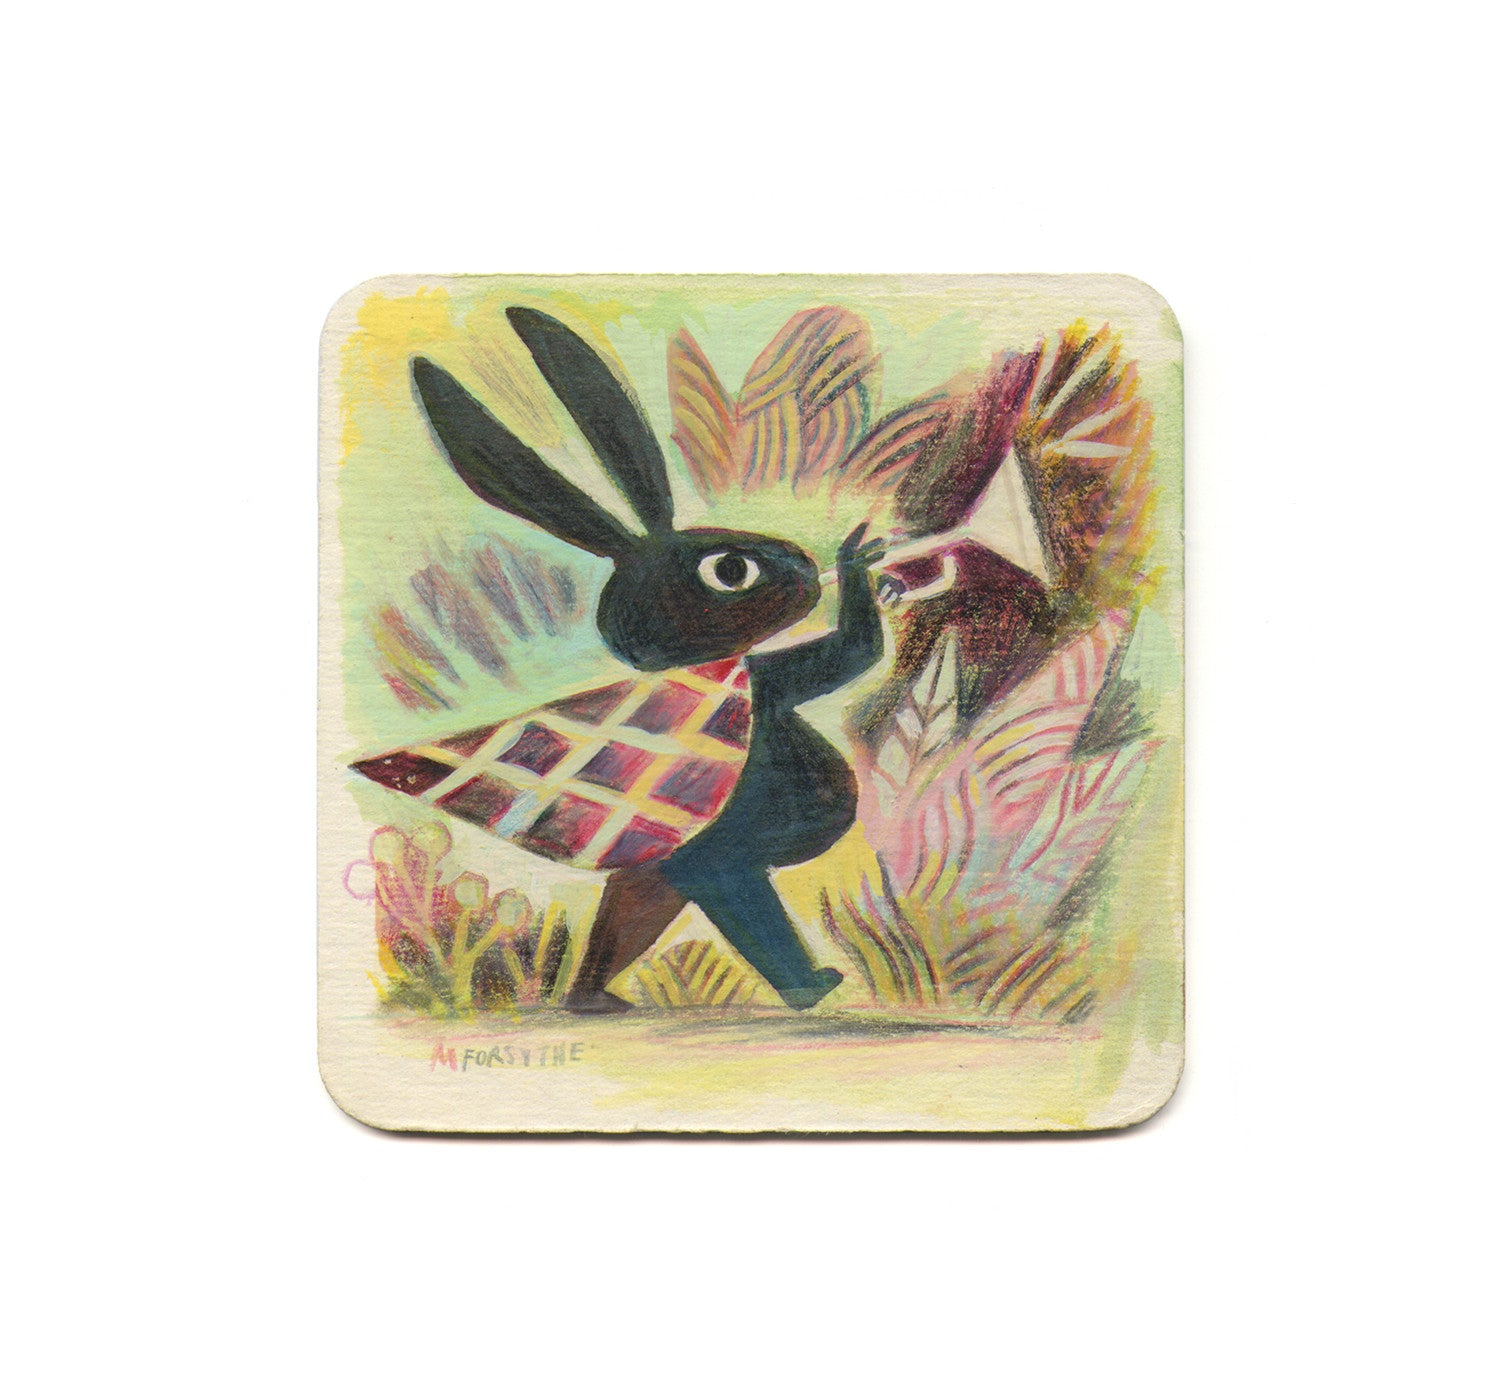 Matt Forsythe - Rabbit Coaster